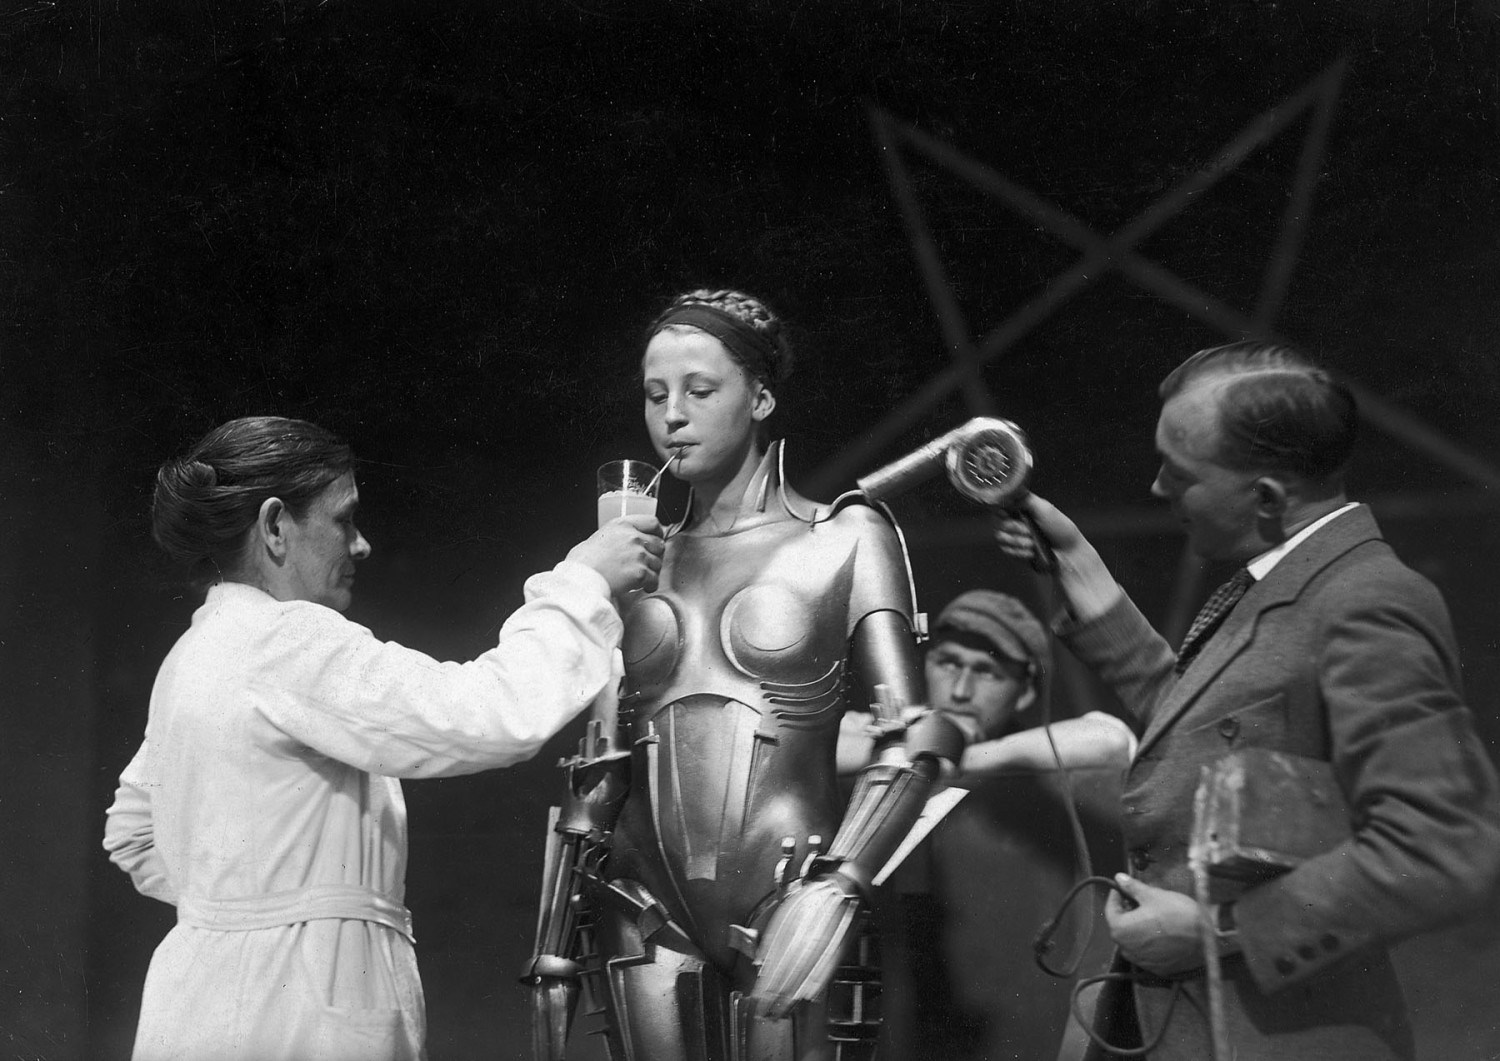 on-the-set-of-Fritz-Lang's-Metropolis-—-the-actress-inside-the-Maria-robot-taking-a-breather